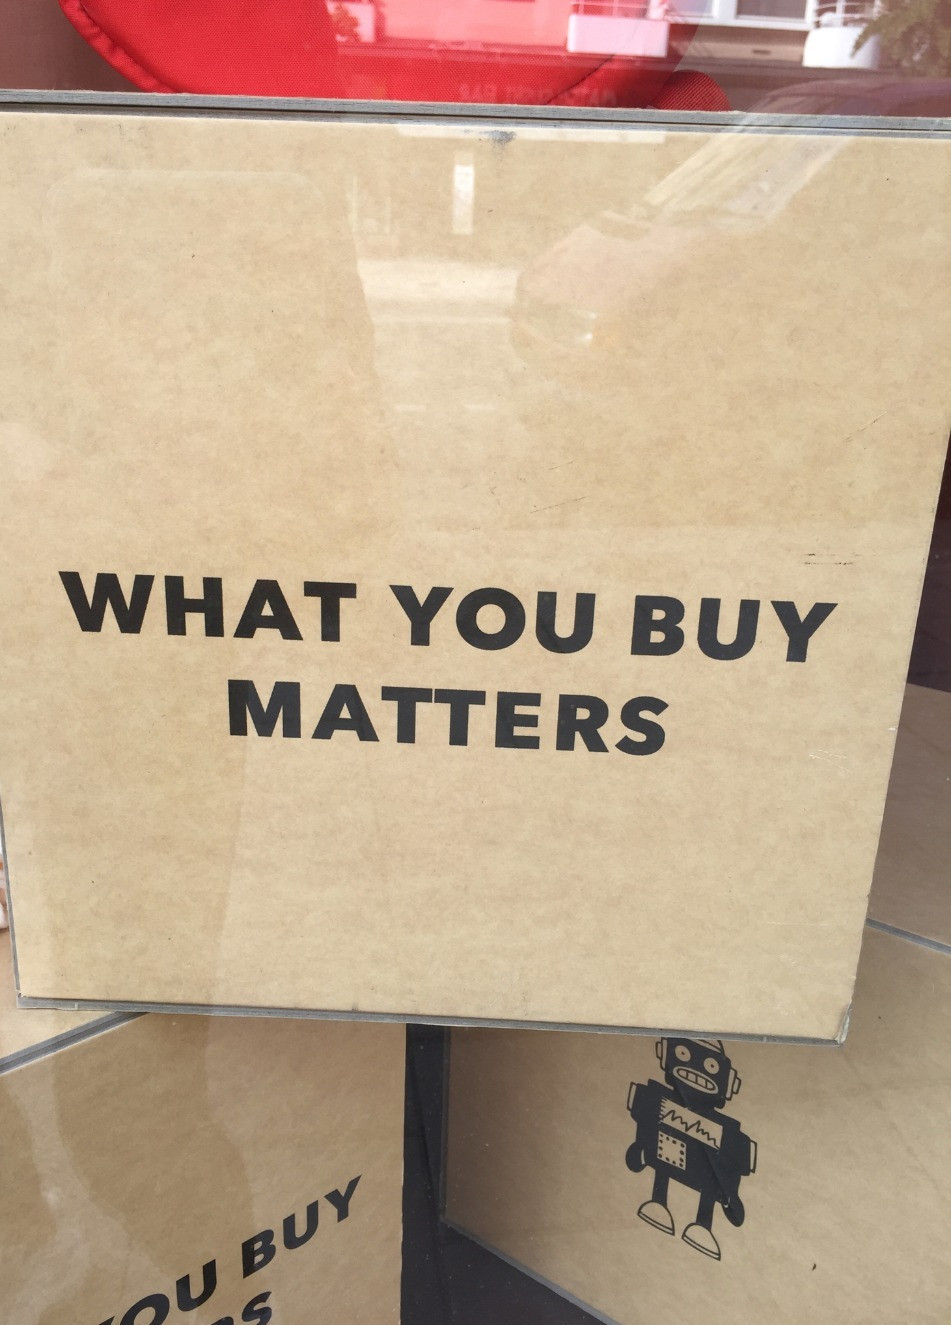 What you buy matters.